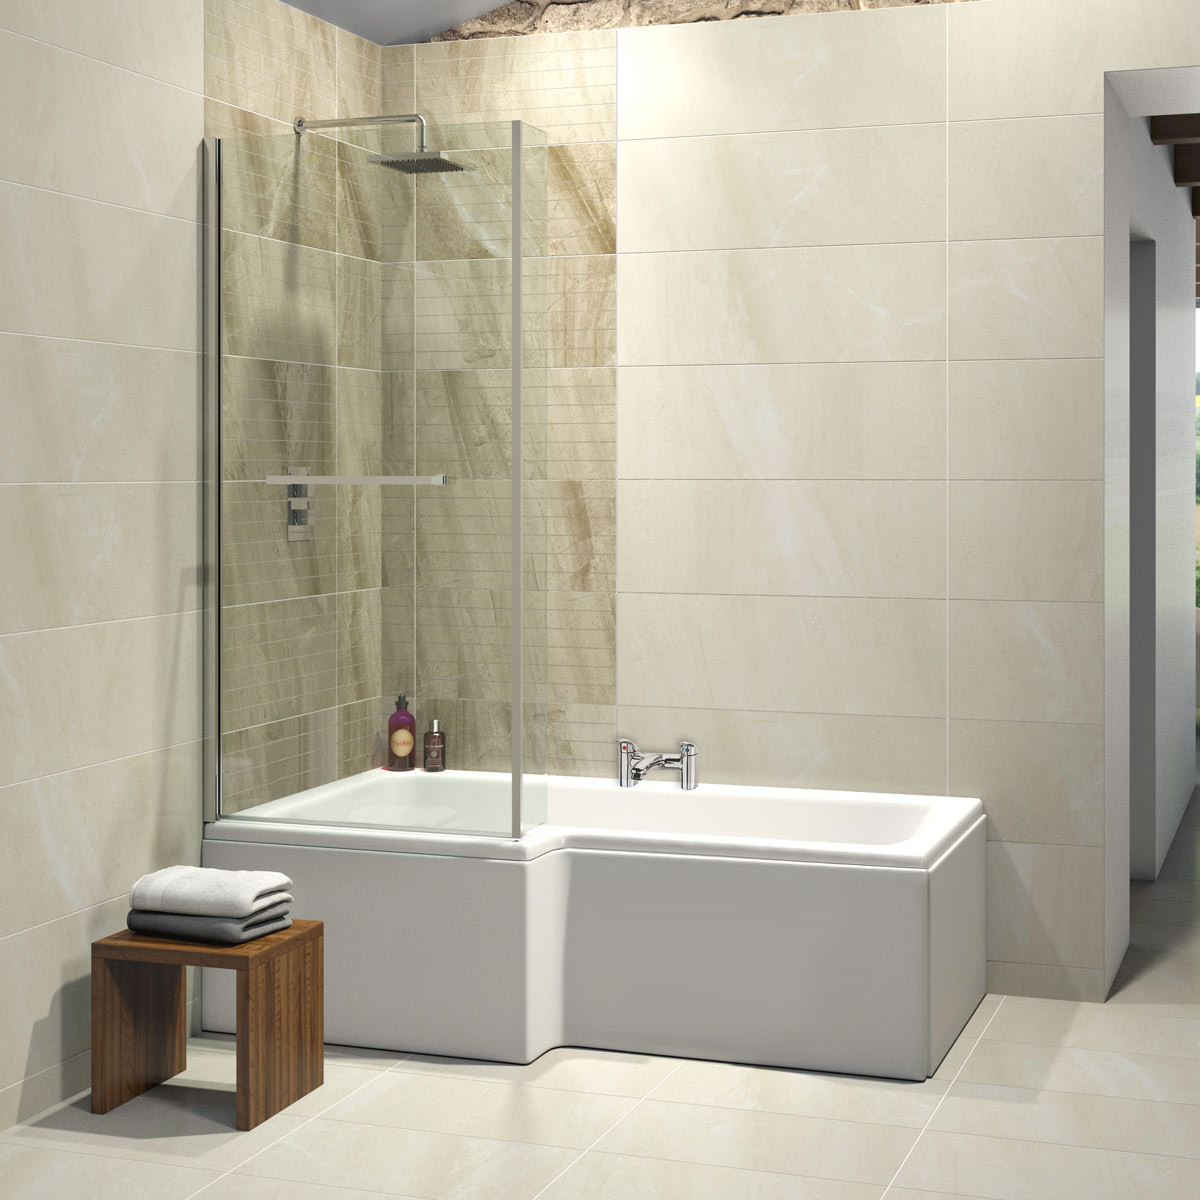 L shaped bath elite l-shaped 1500mm bath full kit left hand FZRAZGX